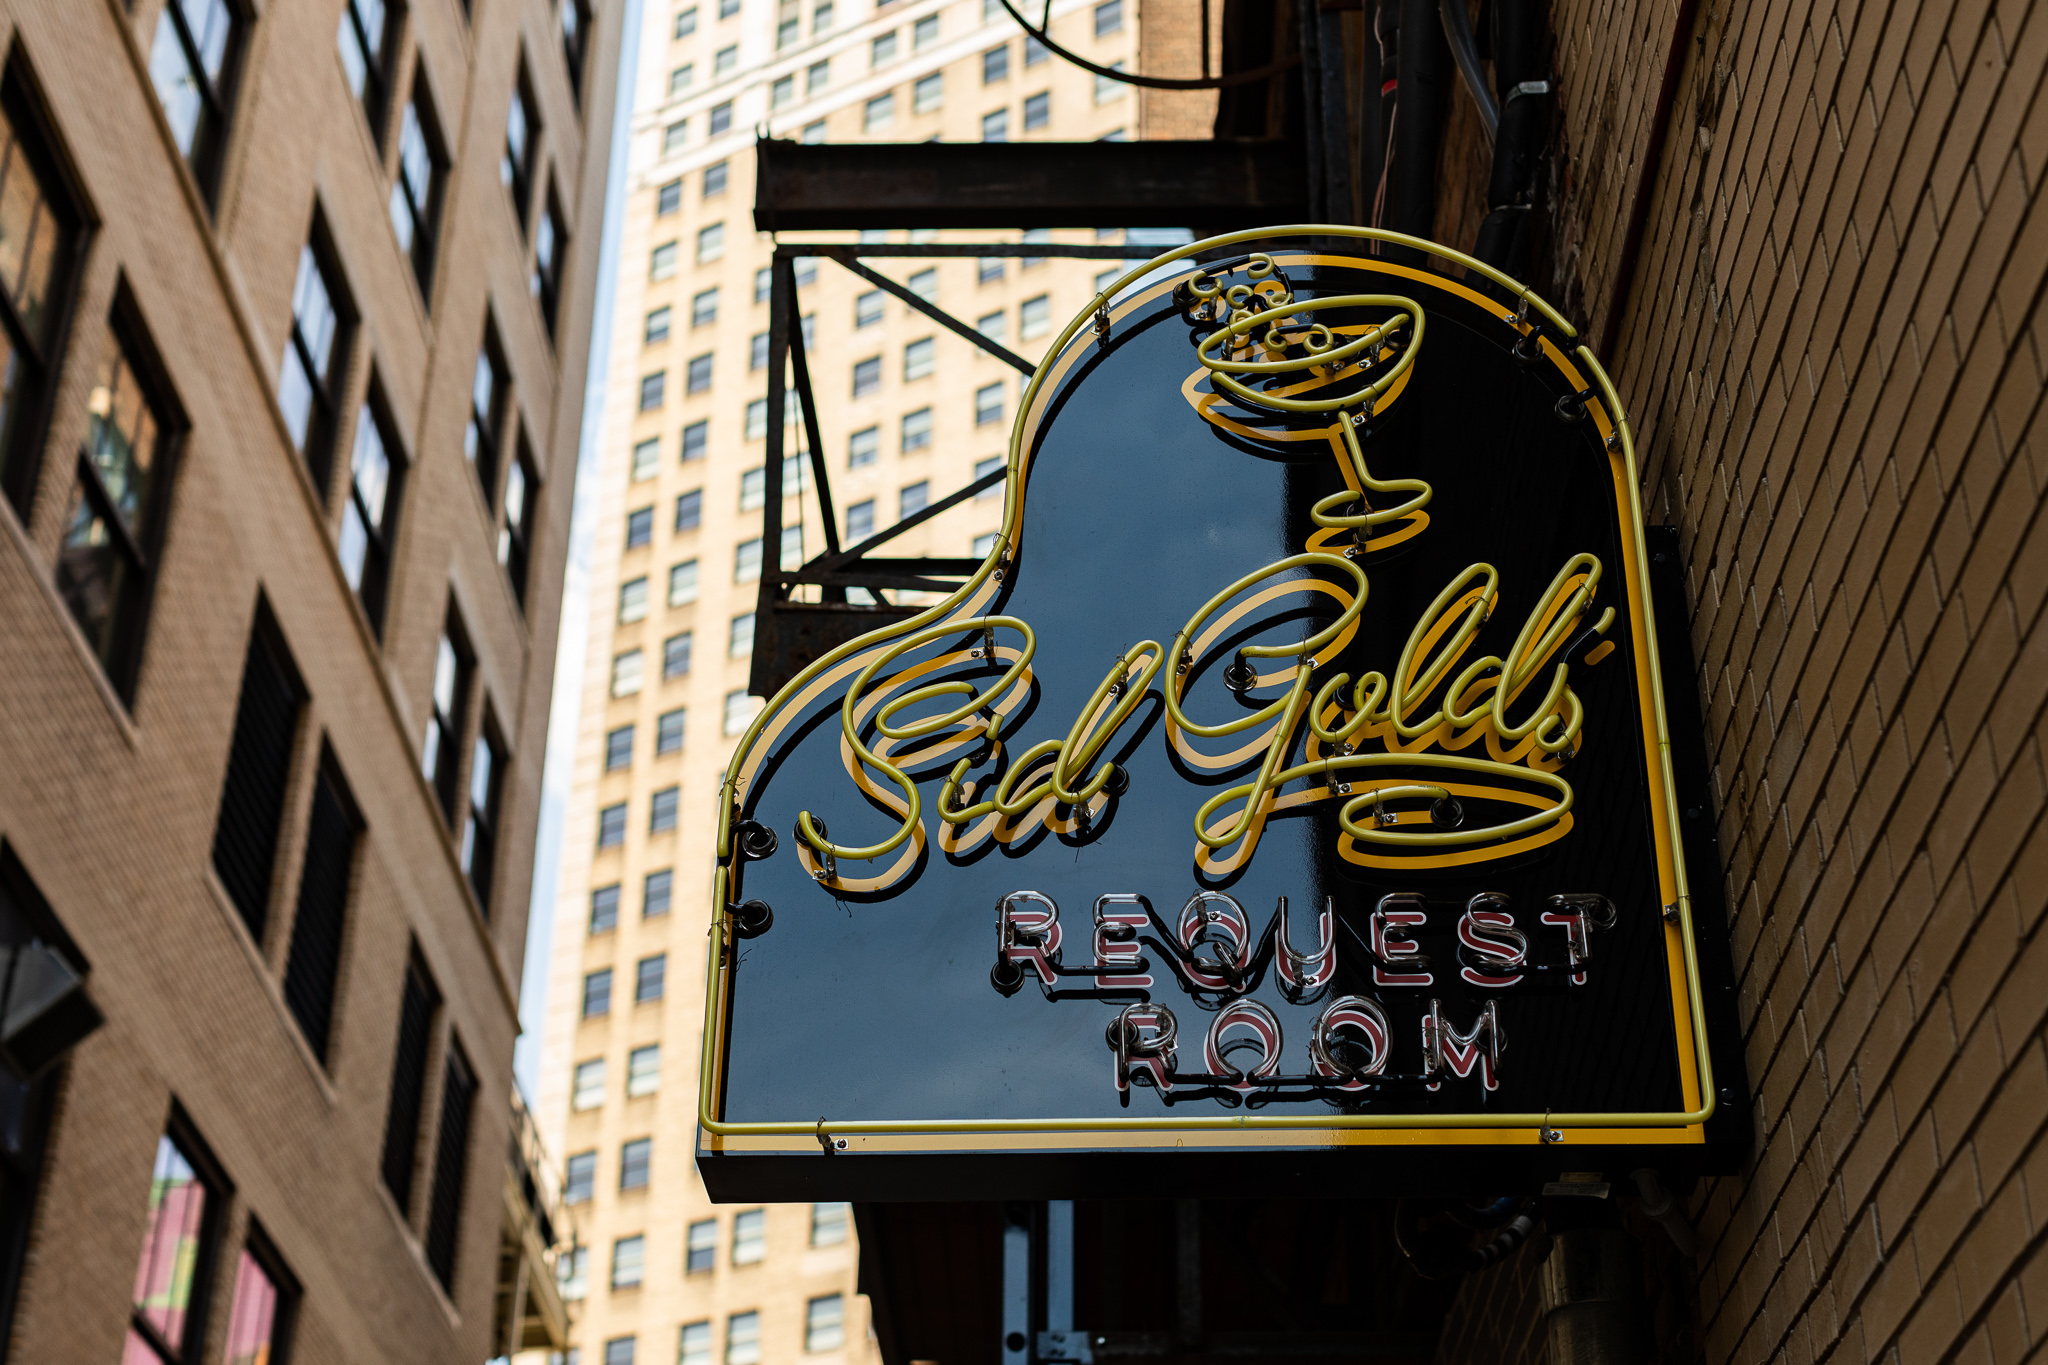 The piano-shaped sign at Sid Gold's when it's still light out. It's built with neon yellow curvy writing with a cocktail coup glass